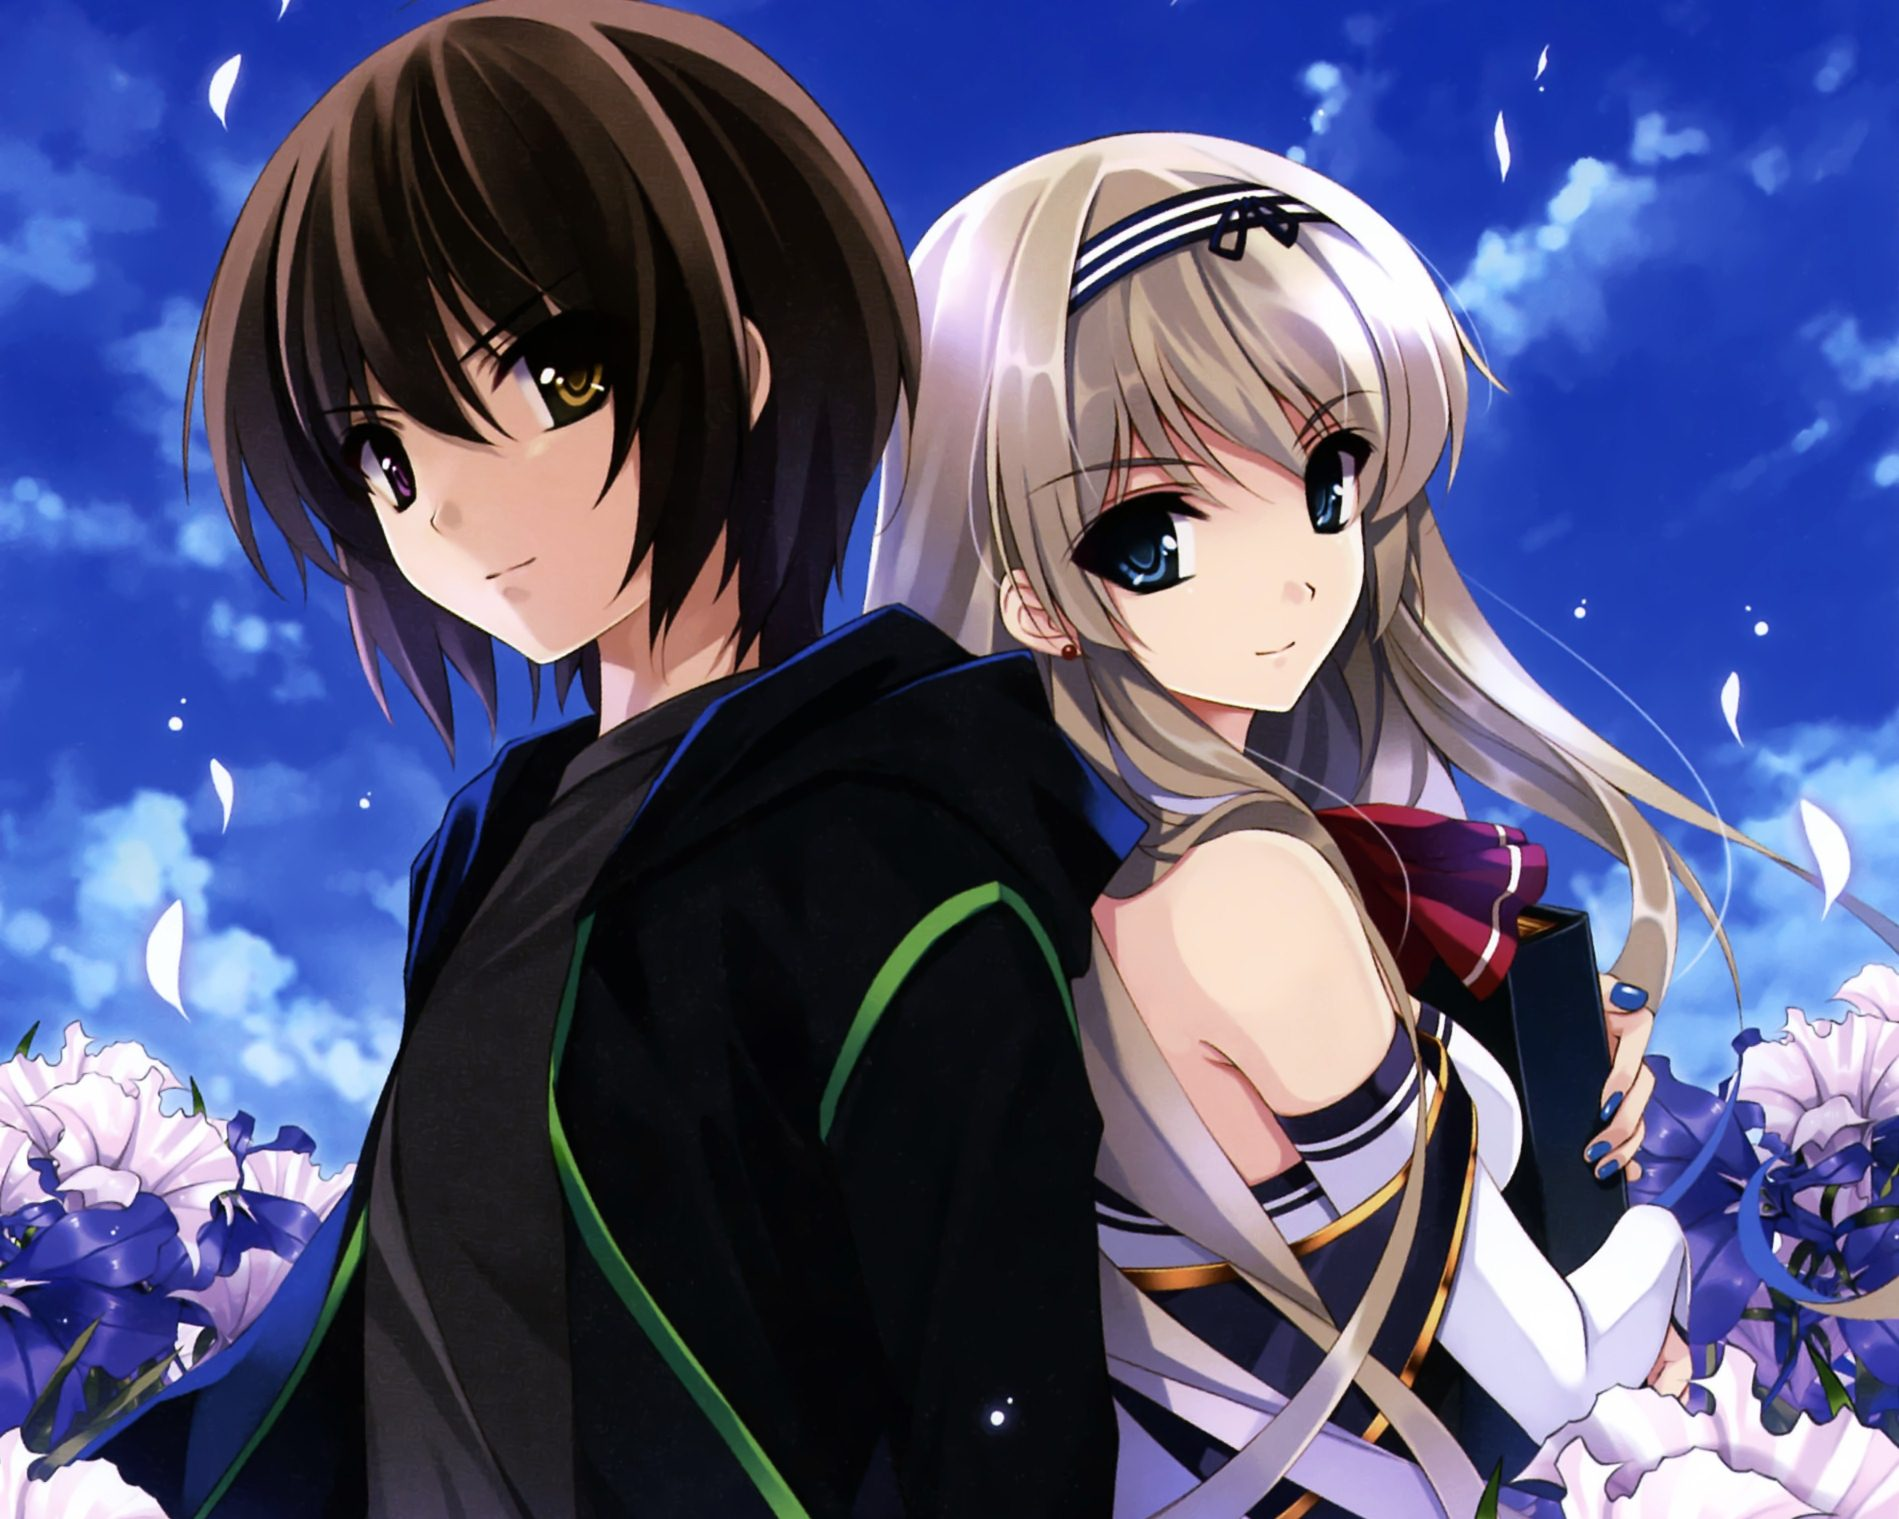 Free Download Anime Love Wallpaper Hd For Desktop Mobile Anime Hd Wallpapers For 1899x1519 For Your Desktop Mobile Tablet Explore 47 Anime Couple Wallpaper Hd Website Manga Wallpaper Cool